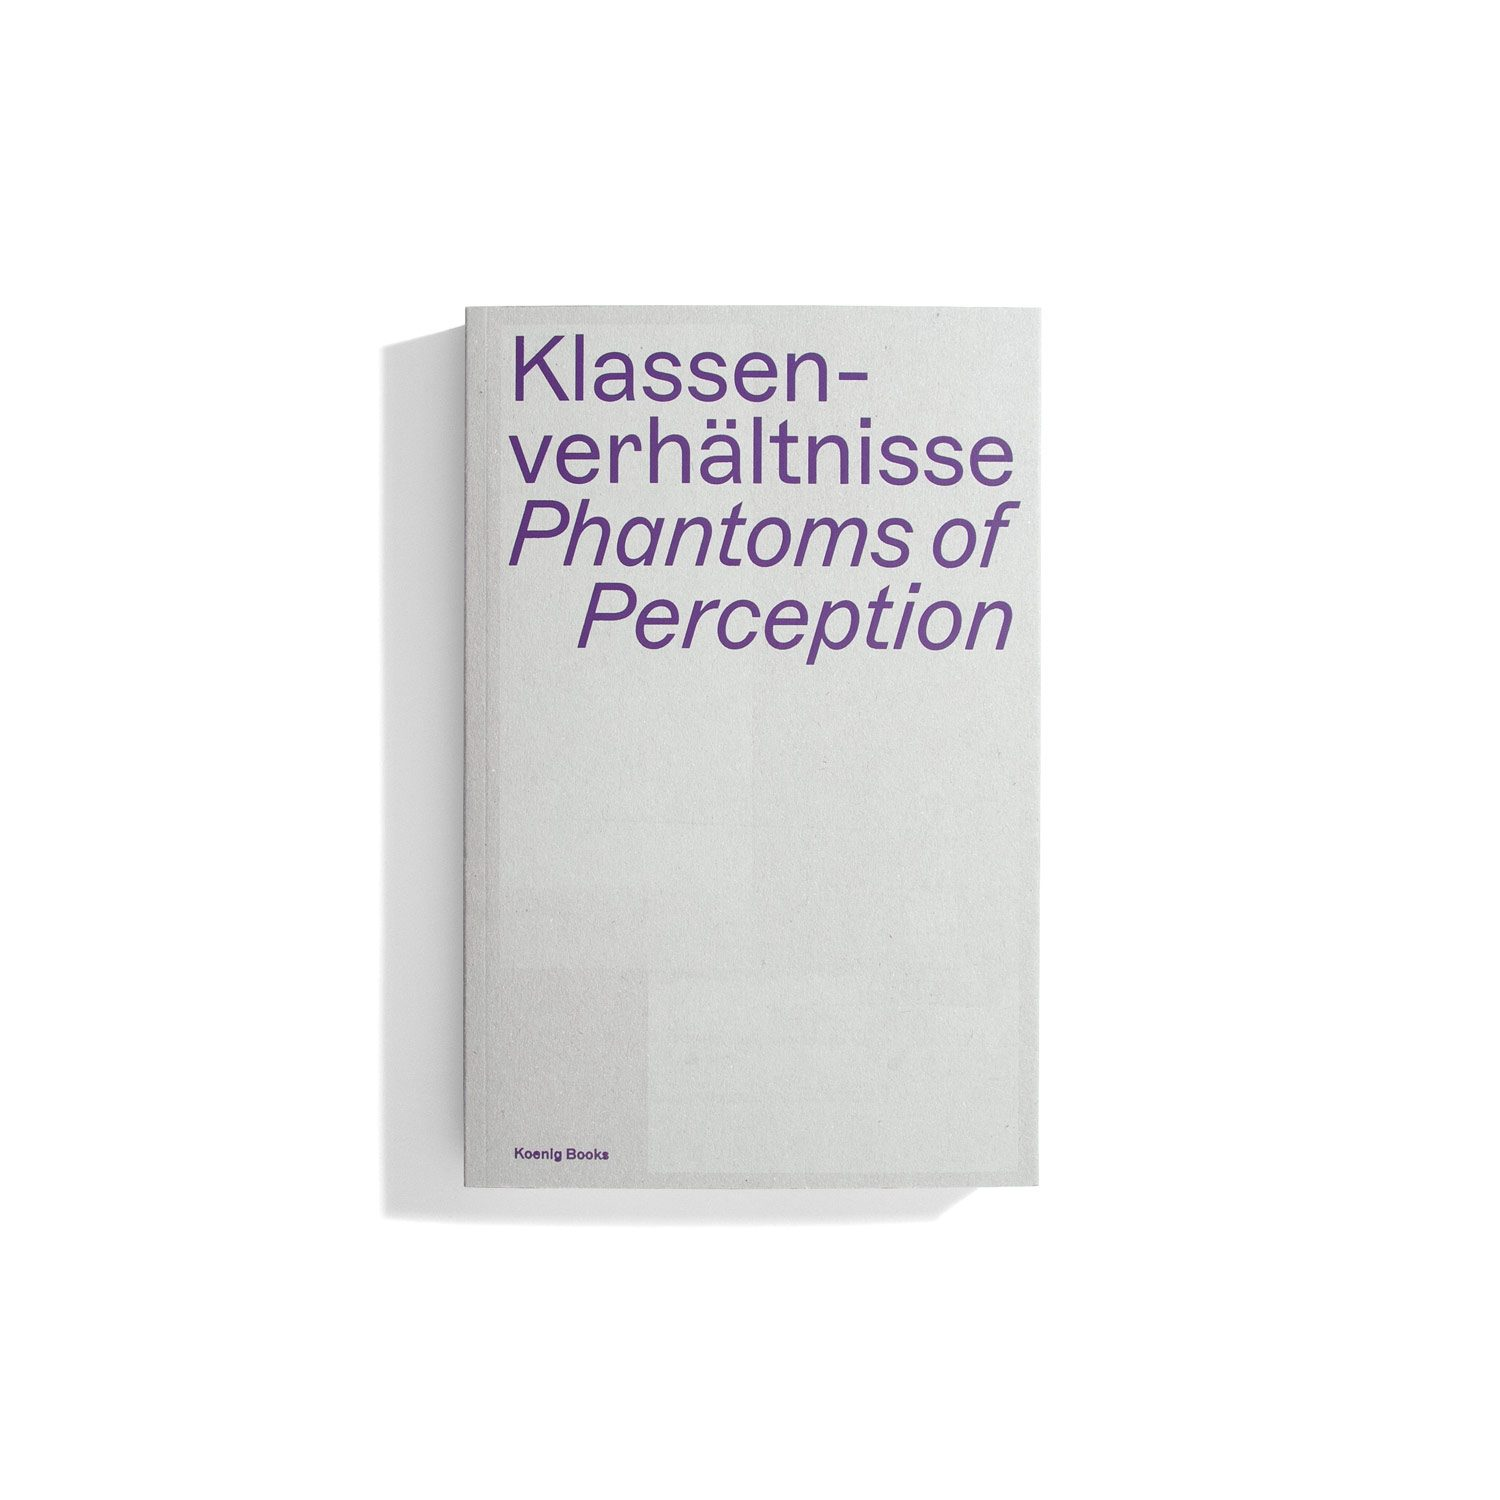 Klassenverhältnisse  - Phantoms of Perception